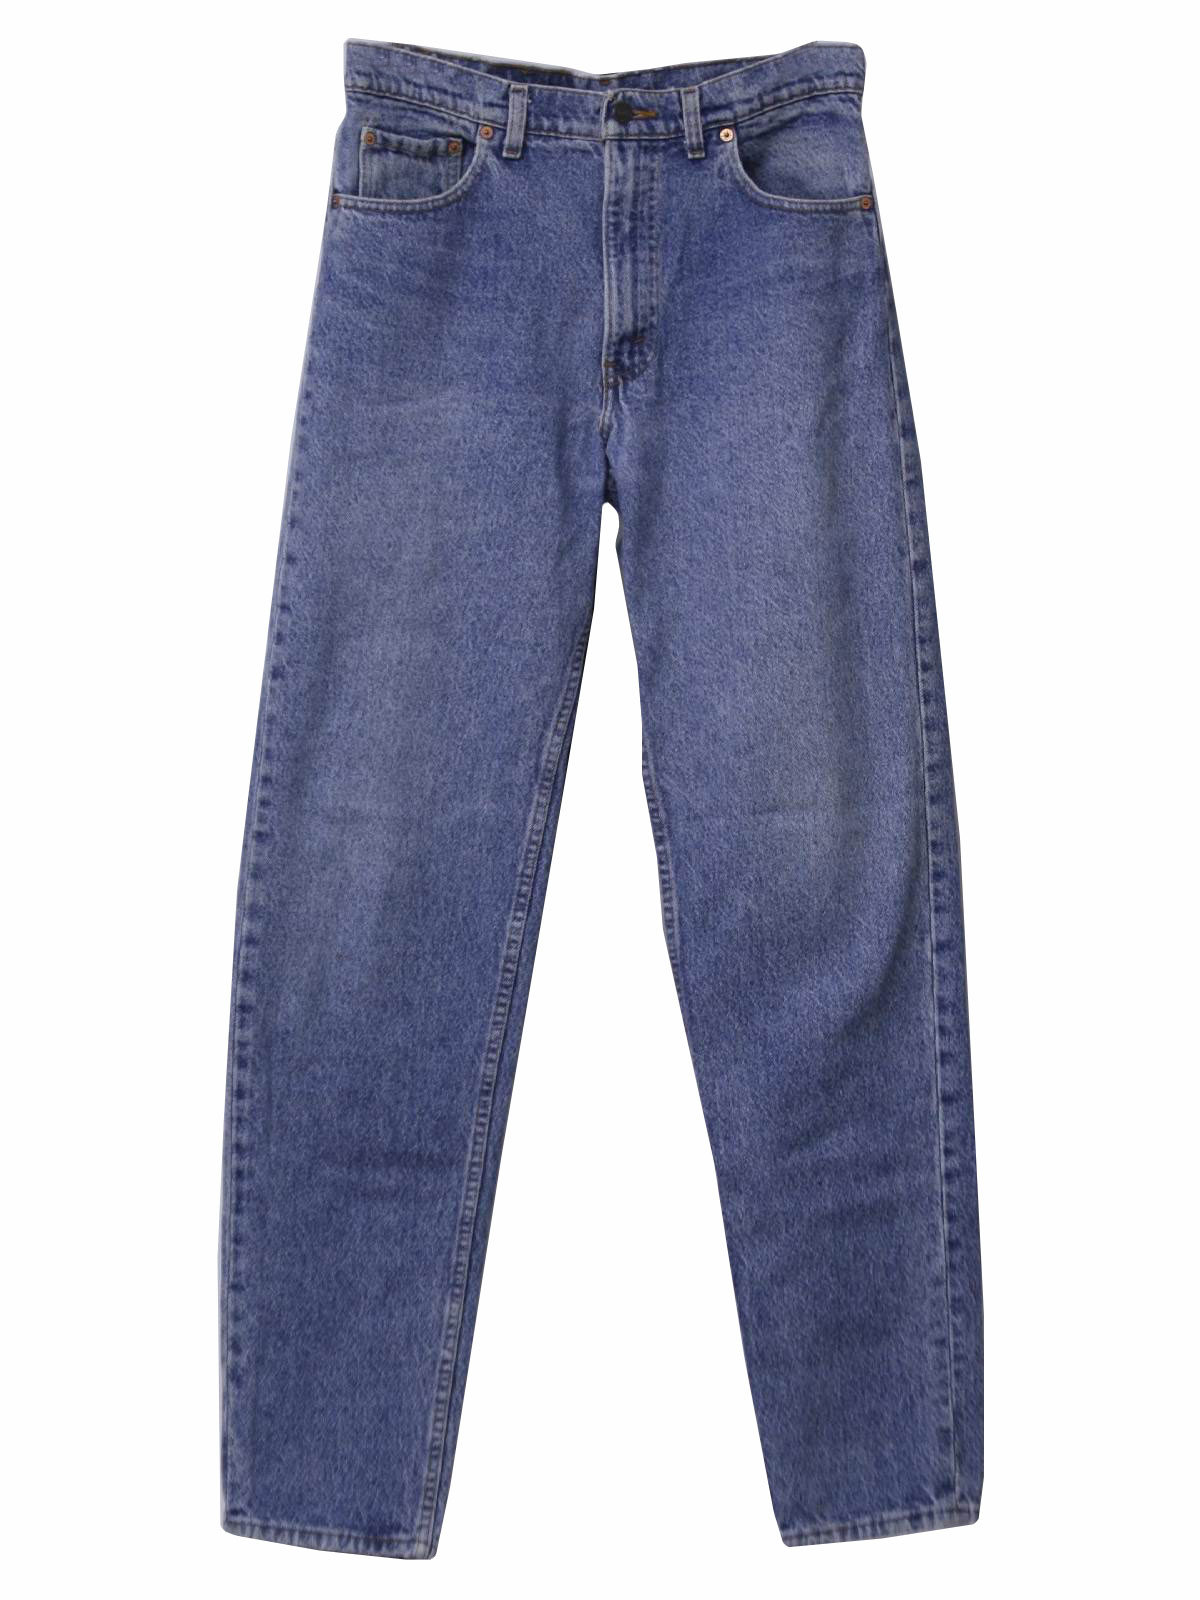 Mens Jeans From The 90s   www.imgkid.com - The Image Kid Has It!